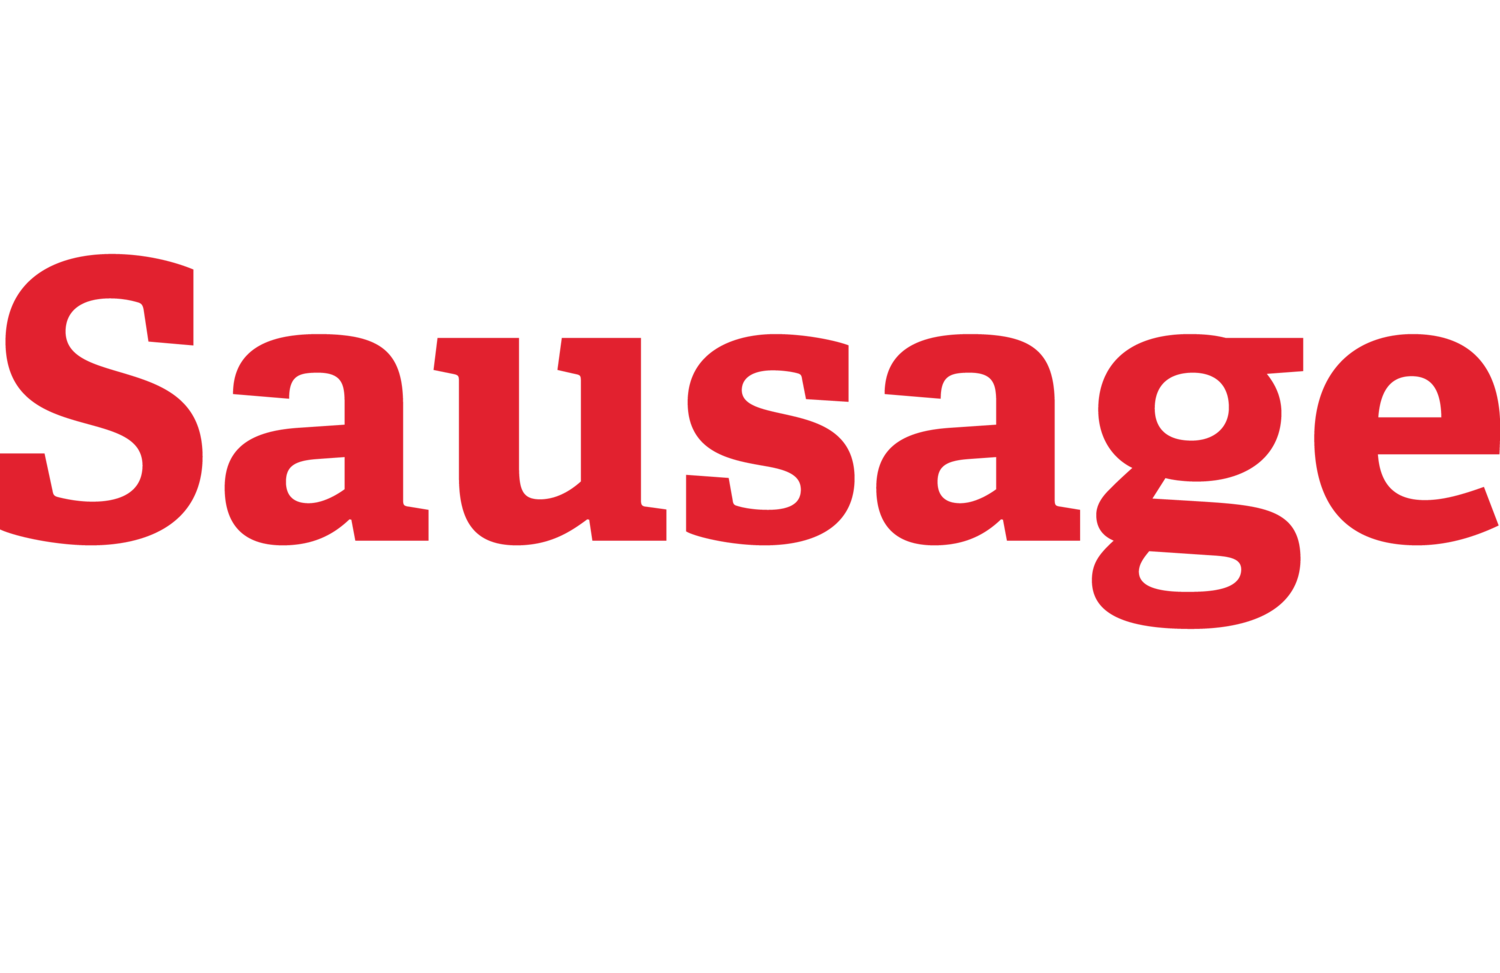 South Central Sausage  logo